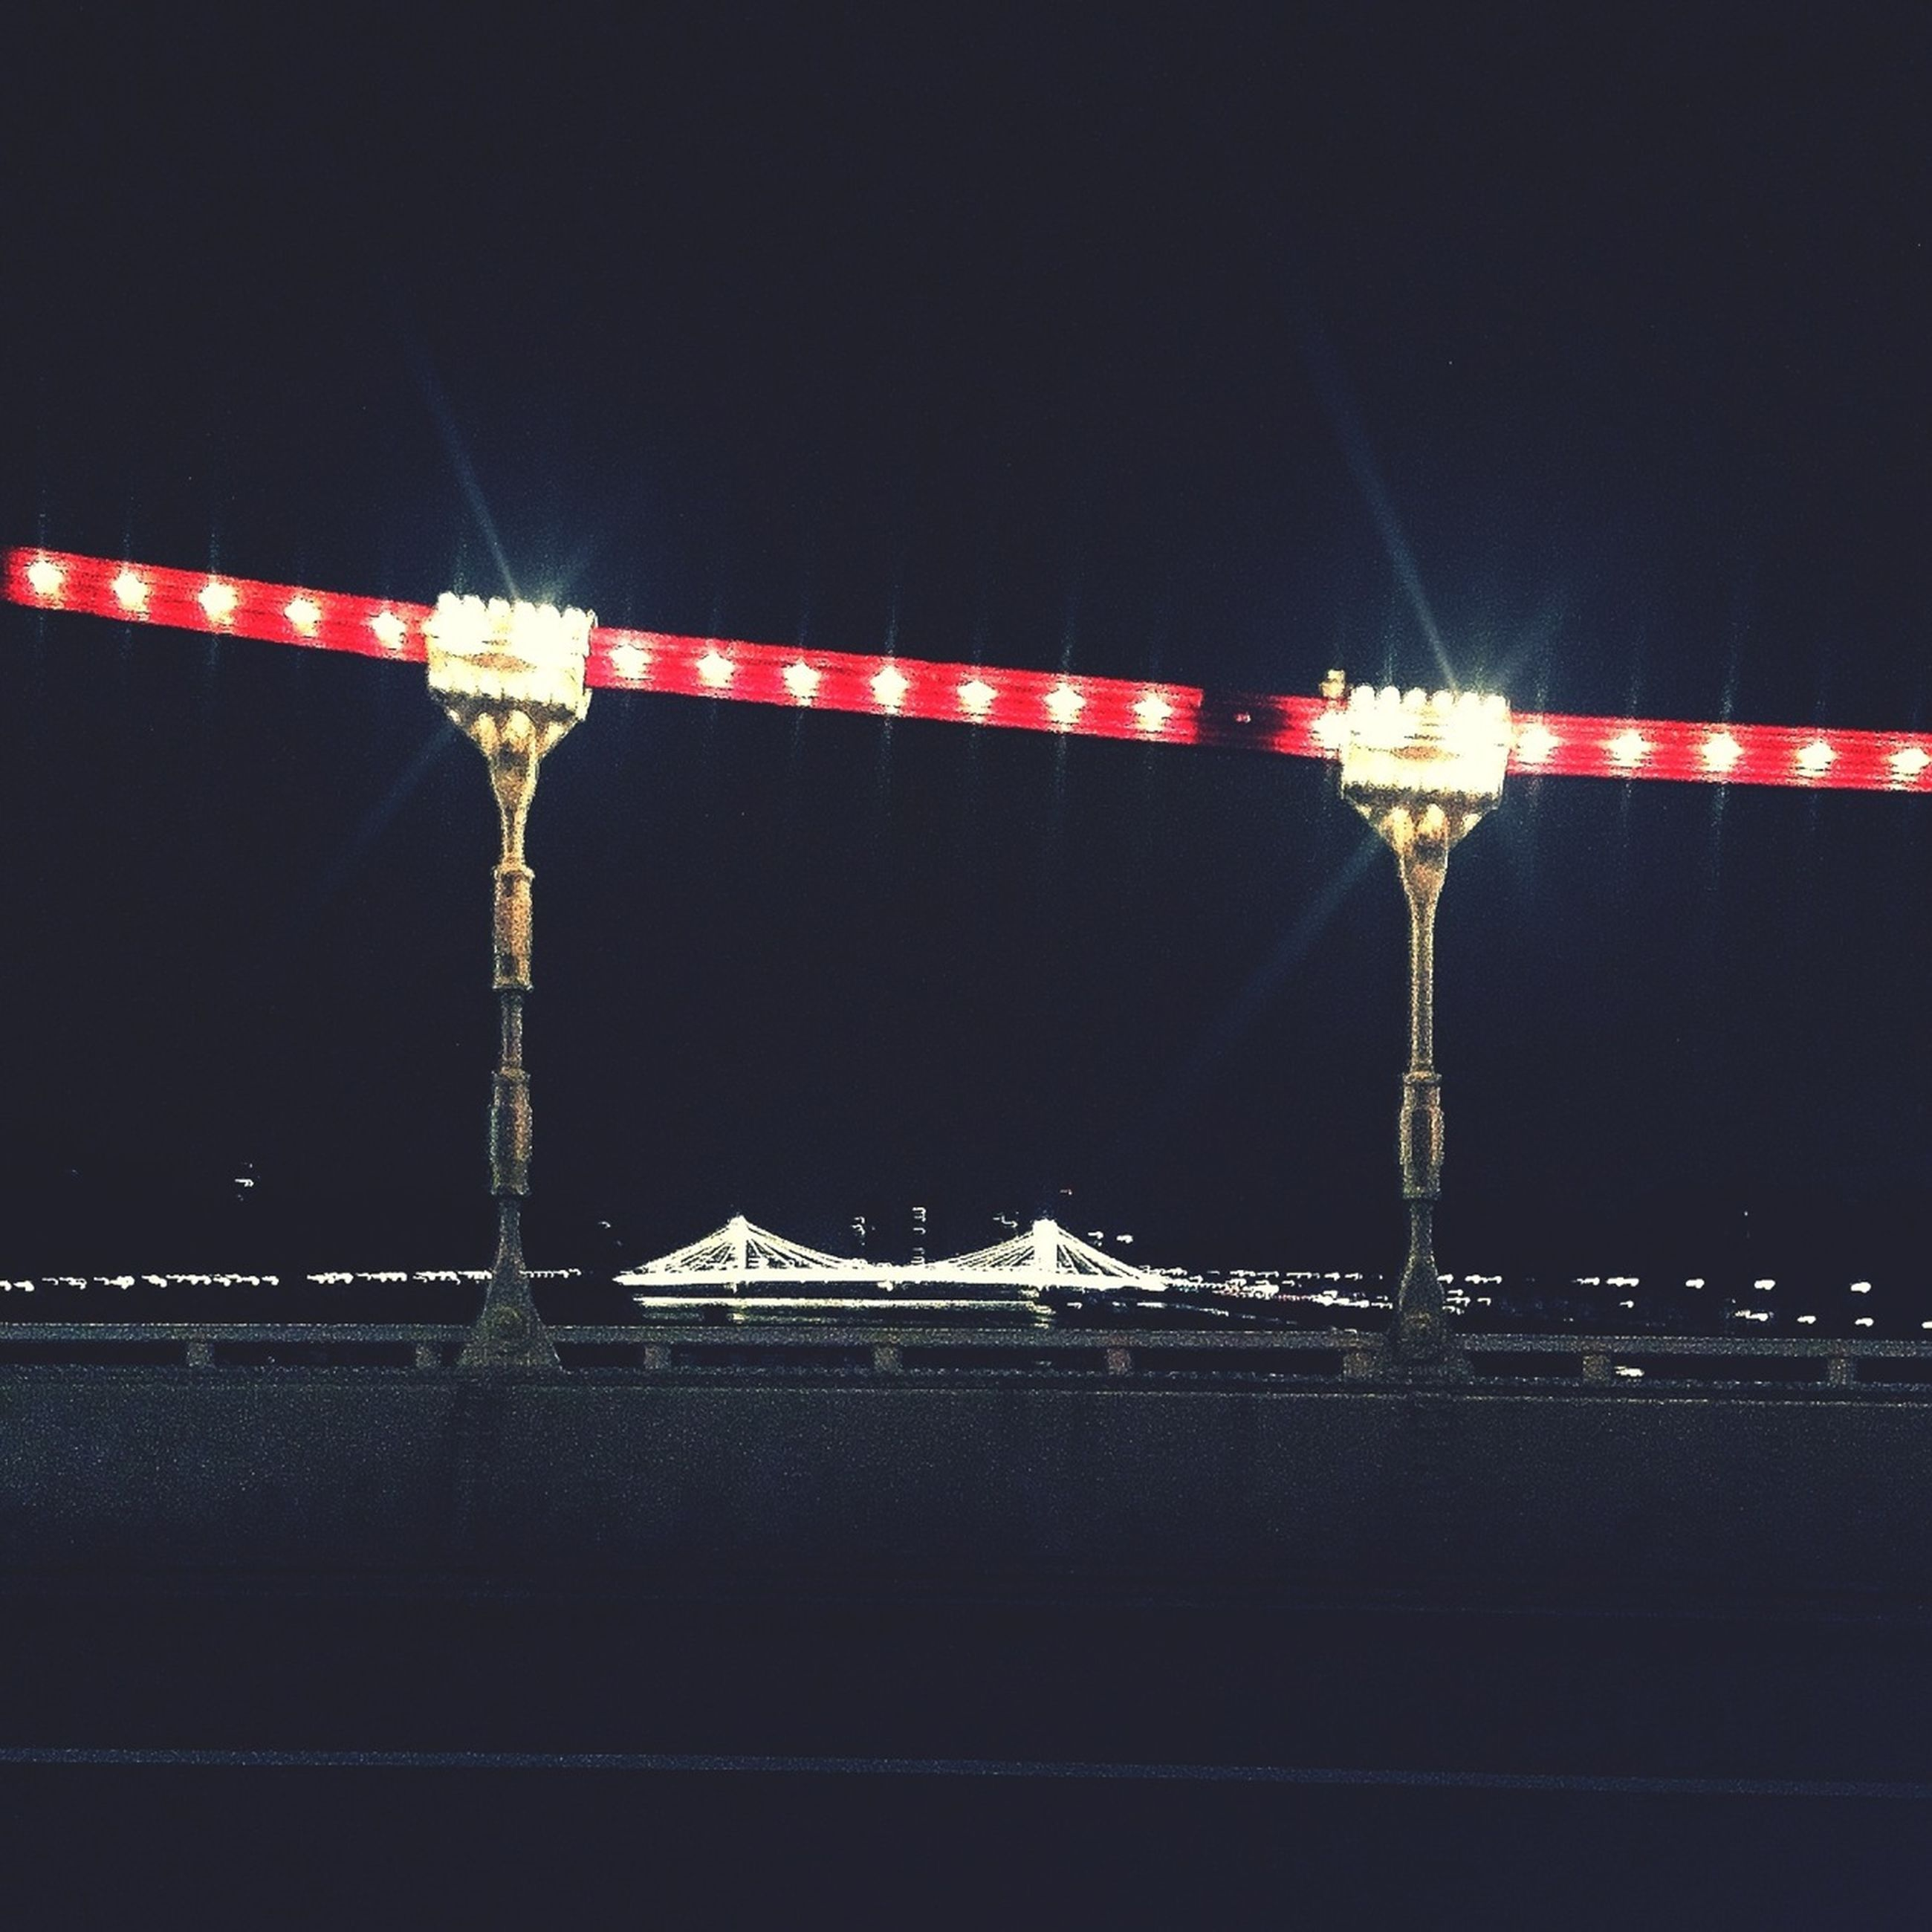 night, illuminated, copy space, lighting equipment, red, clear sky, multi colored, electricity, dark, low angle view, arts culture and entertainment, outdoors, street light, no people, long exposure, hanging, built structure, in a row, electric light, motion